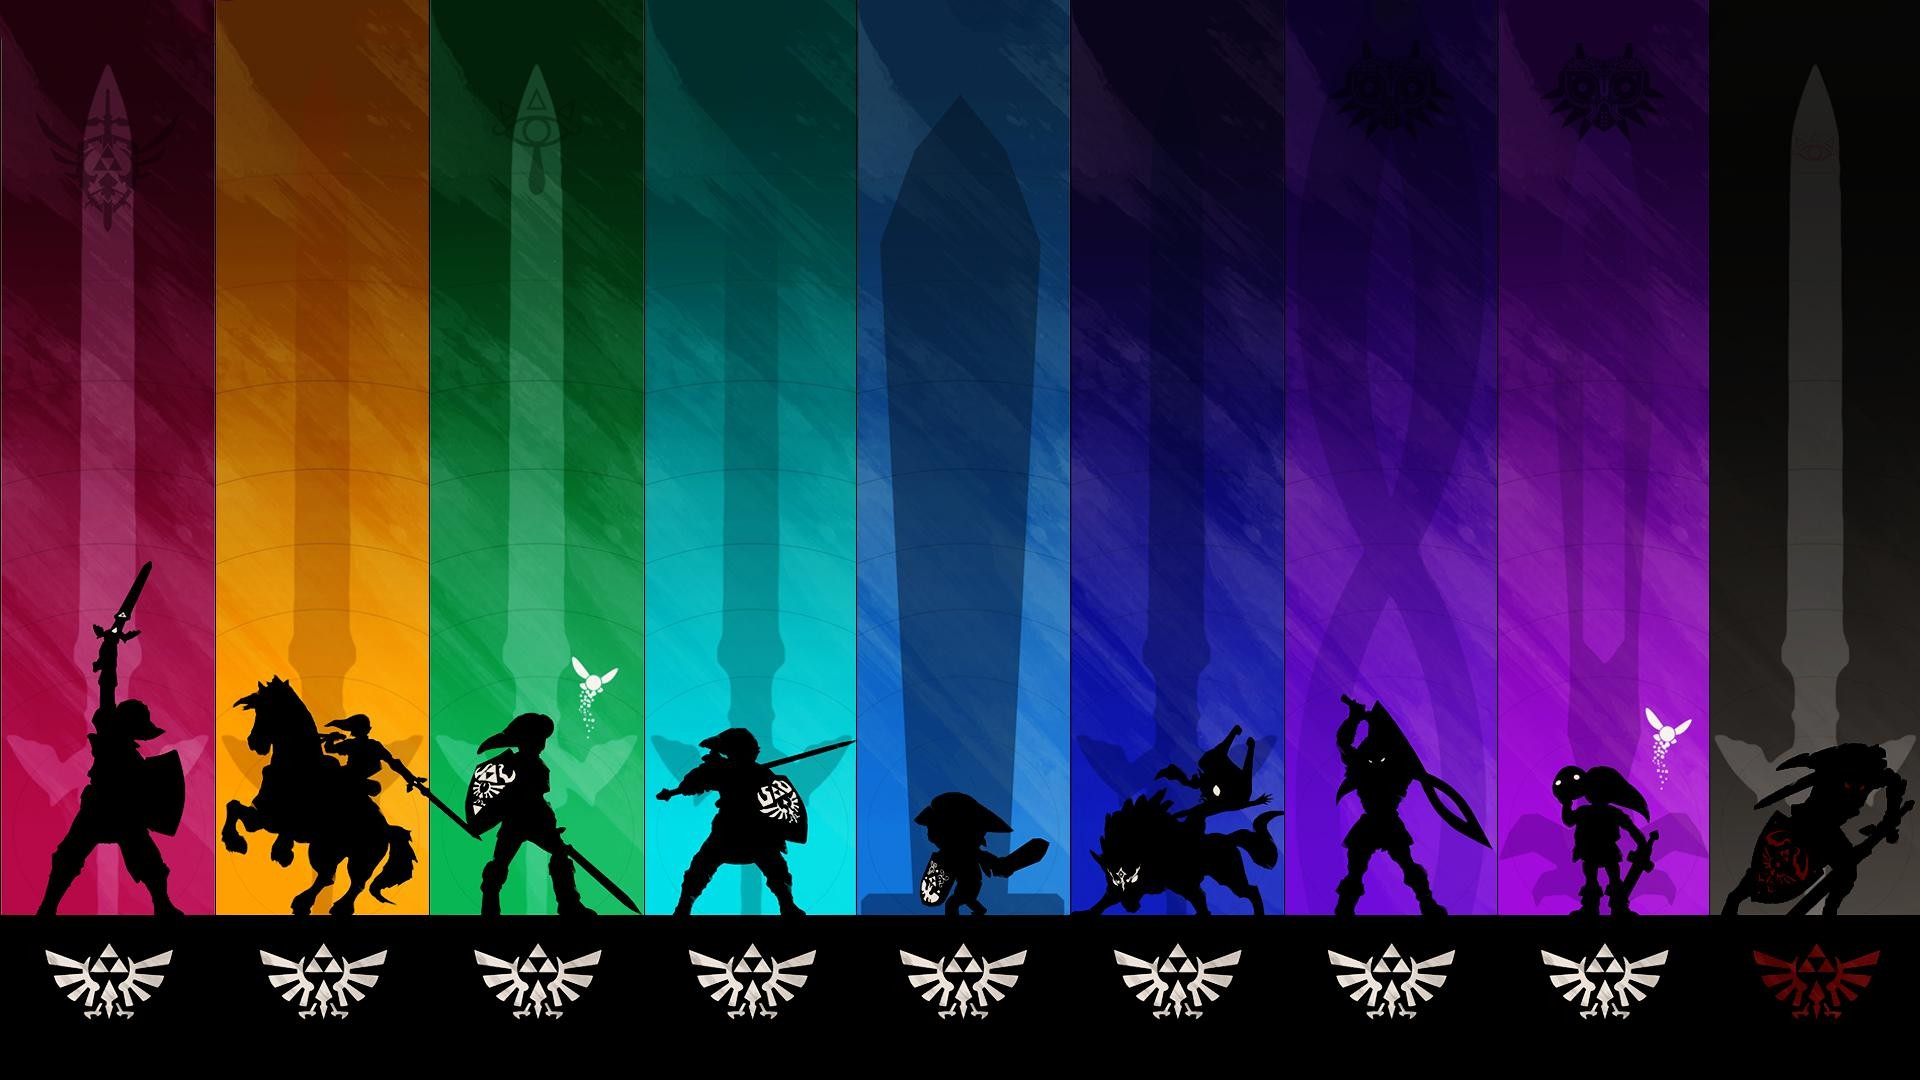 Legend Of Zelda Wallpaper (75+ Images